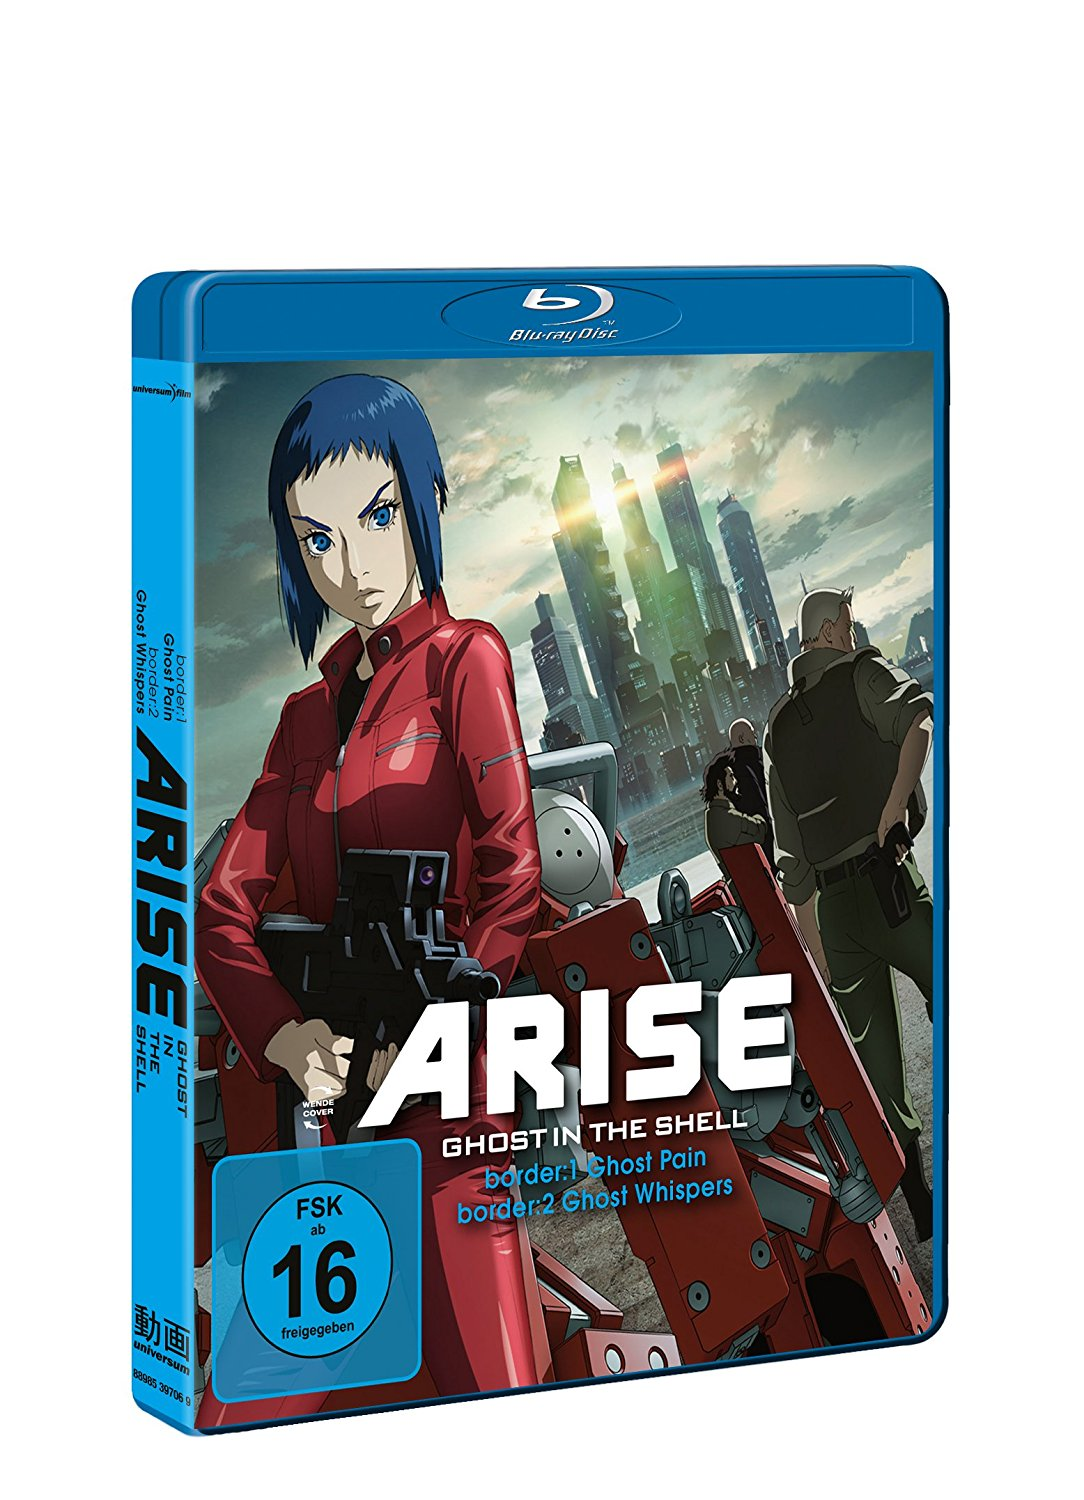 ghost in the shell arise border 1 review 2018 dodge reviews